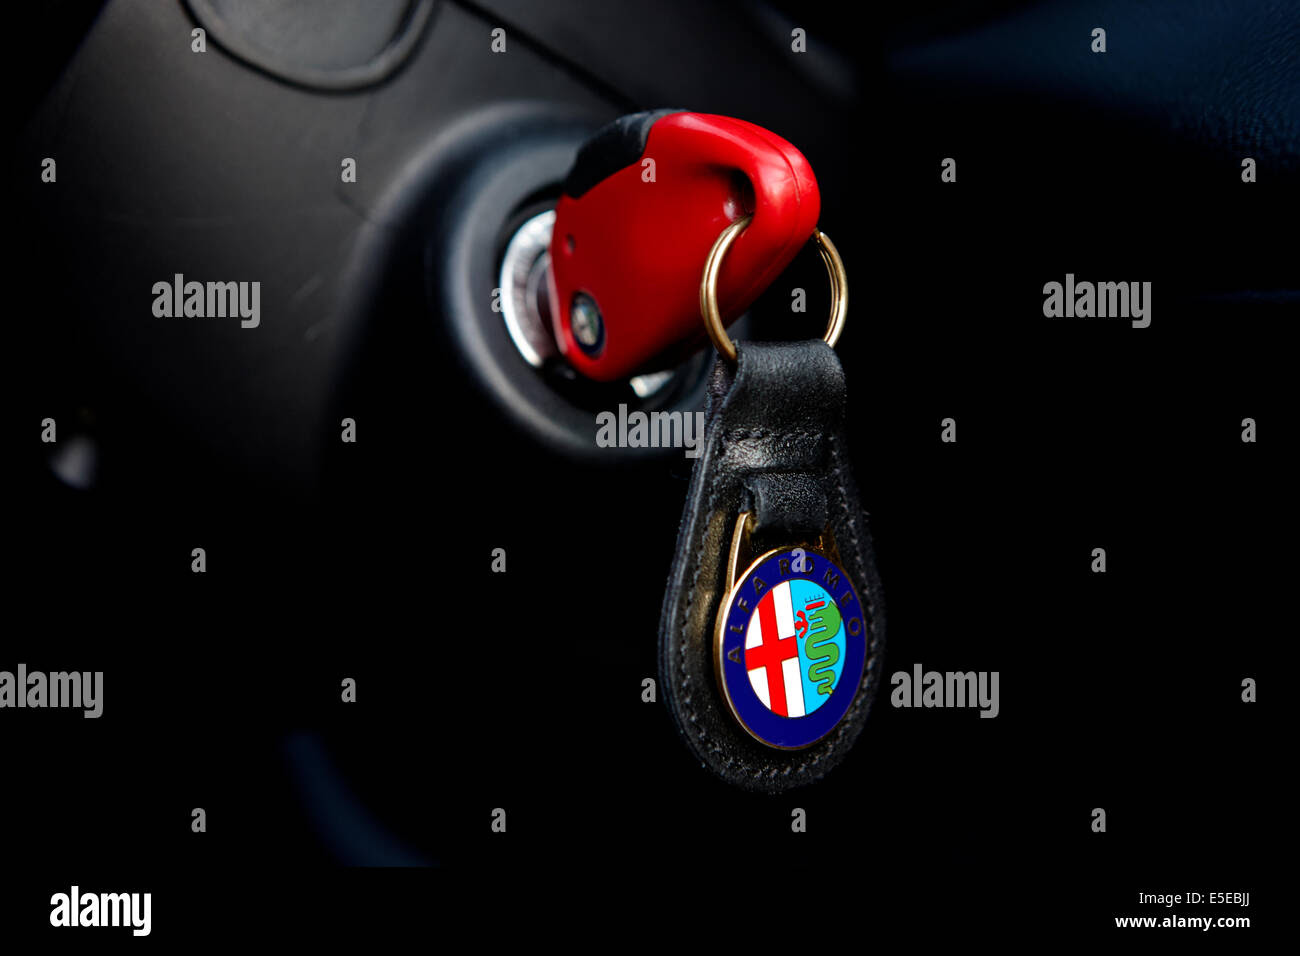 key in the ignition of an Alfa Romeo 156 Stock Photo, Royalty Free Image: 72231226  Alamy